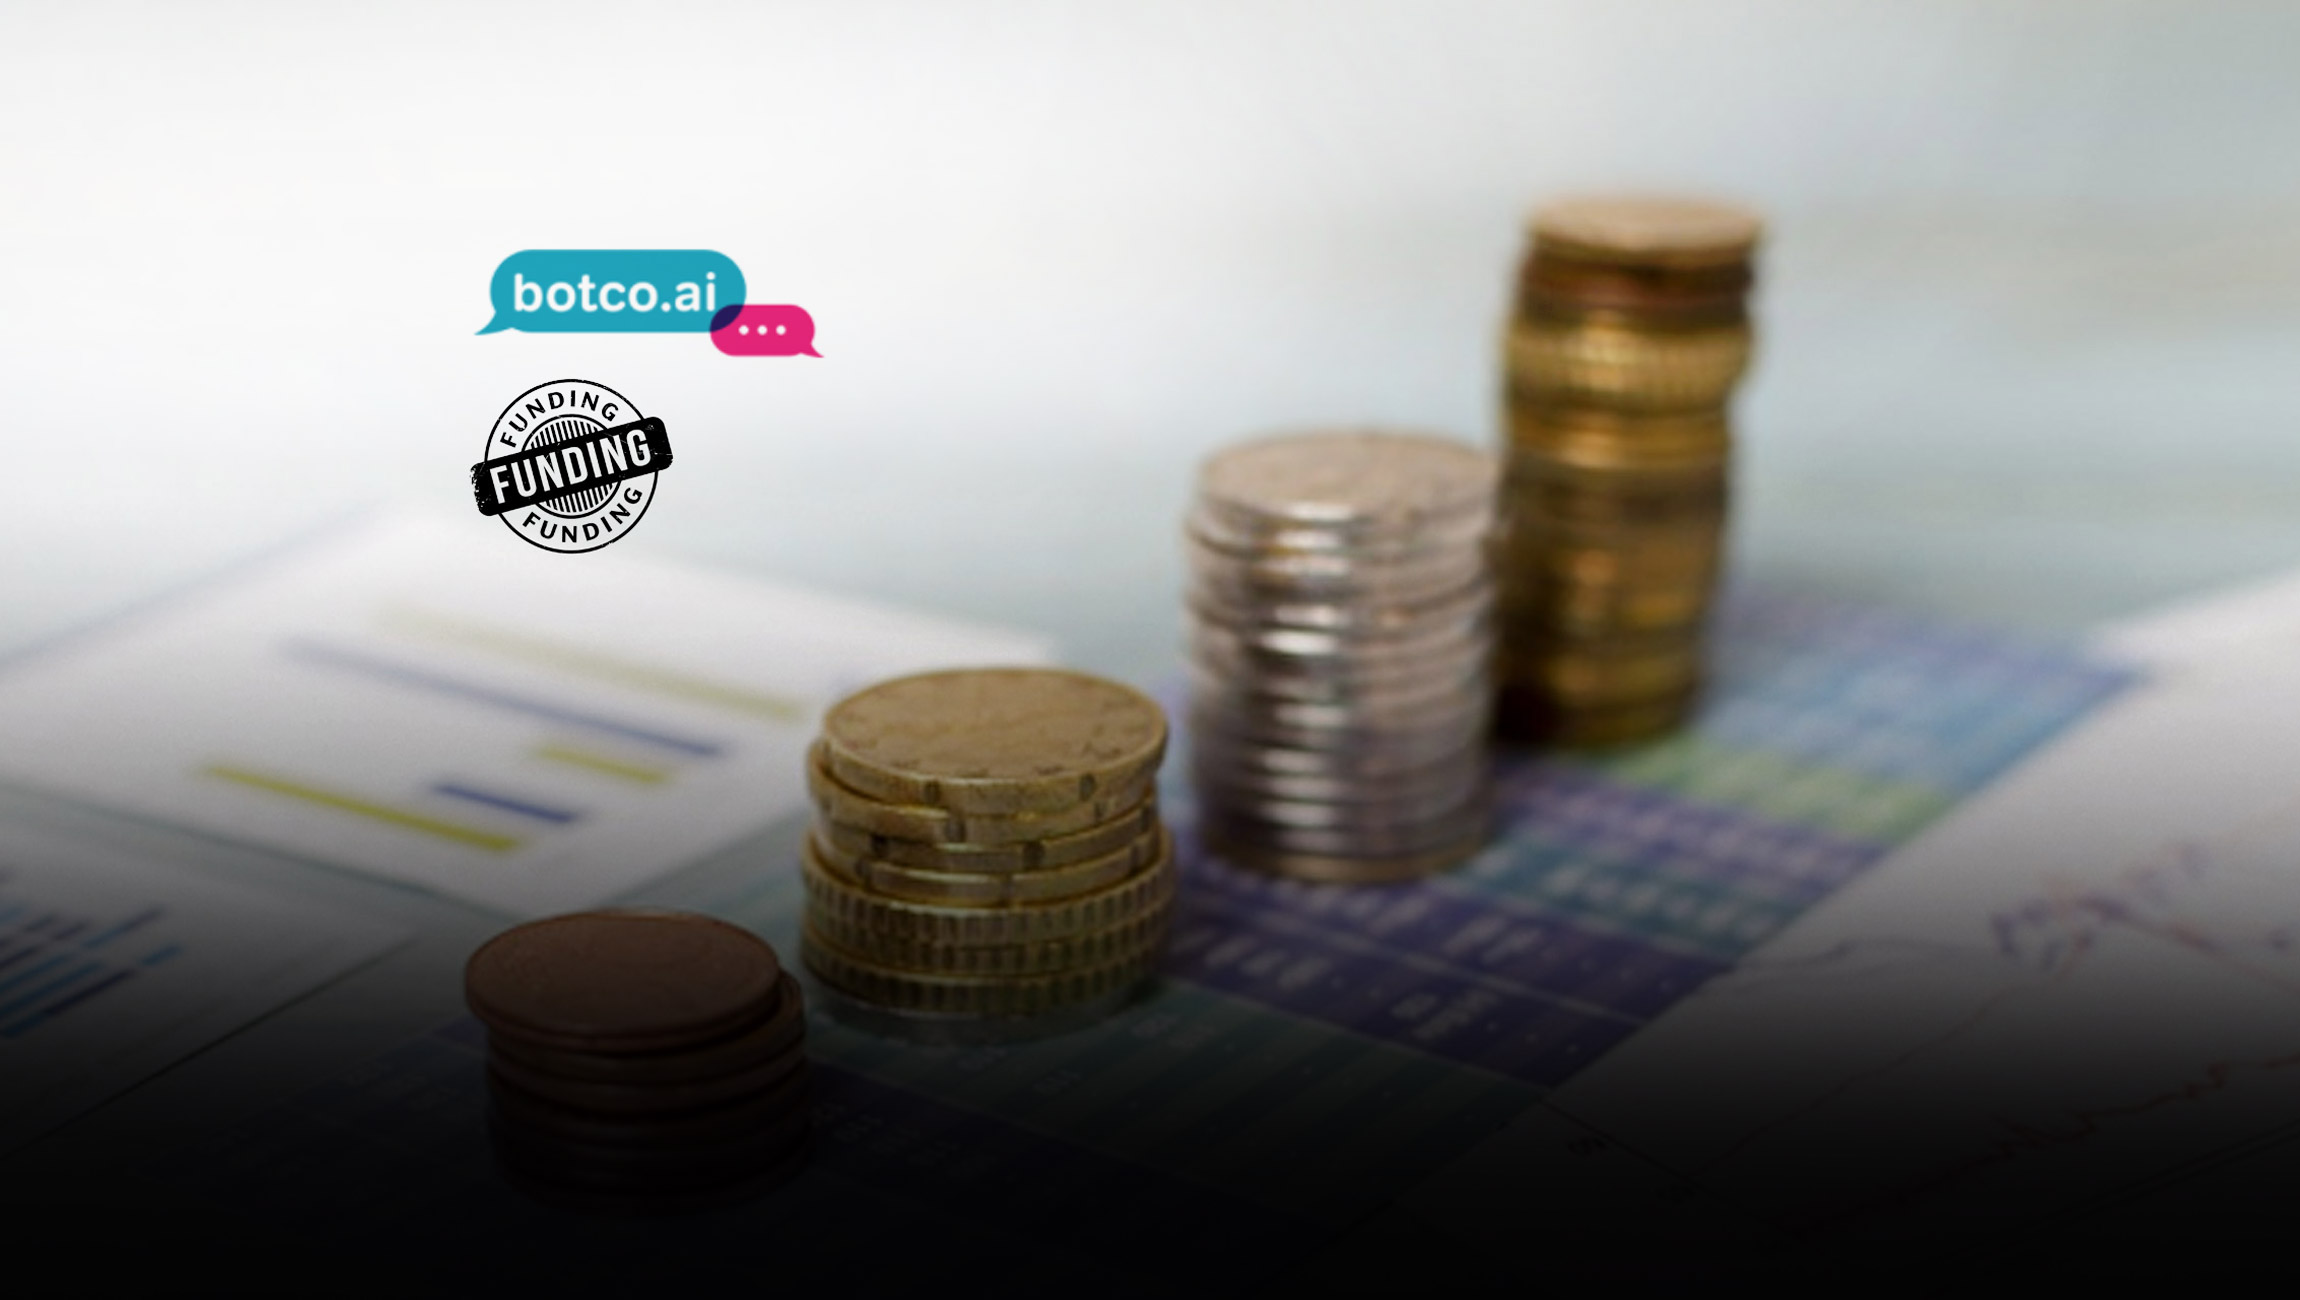 Botco.ai Closes Funding to Revolutionize the Healthcare Experience Through Intelligent Chat